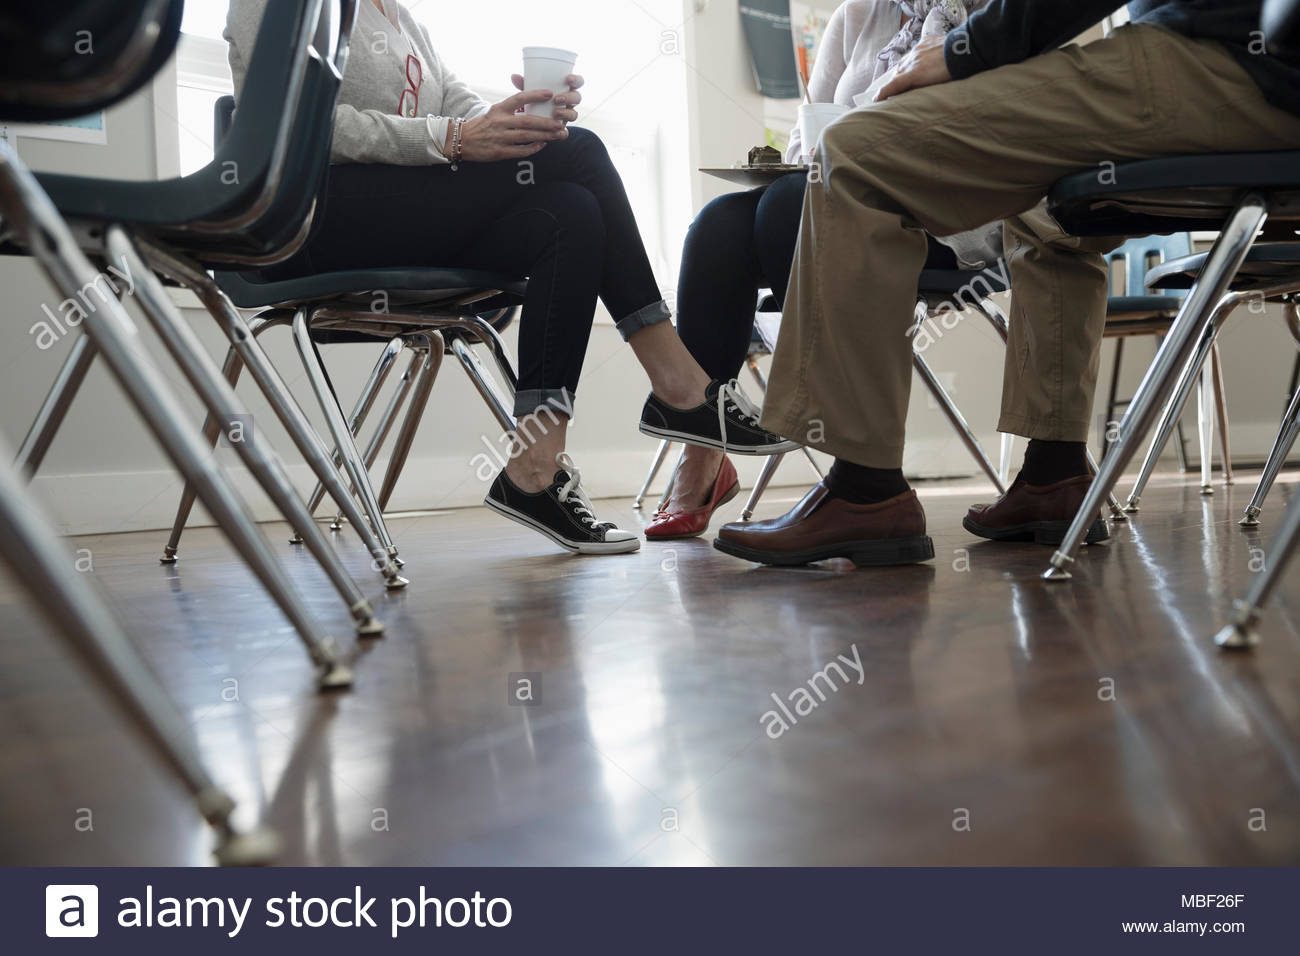 Support group talking, drinking coffee in community center - Stock Image